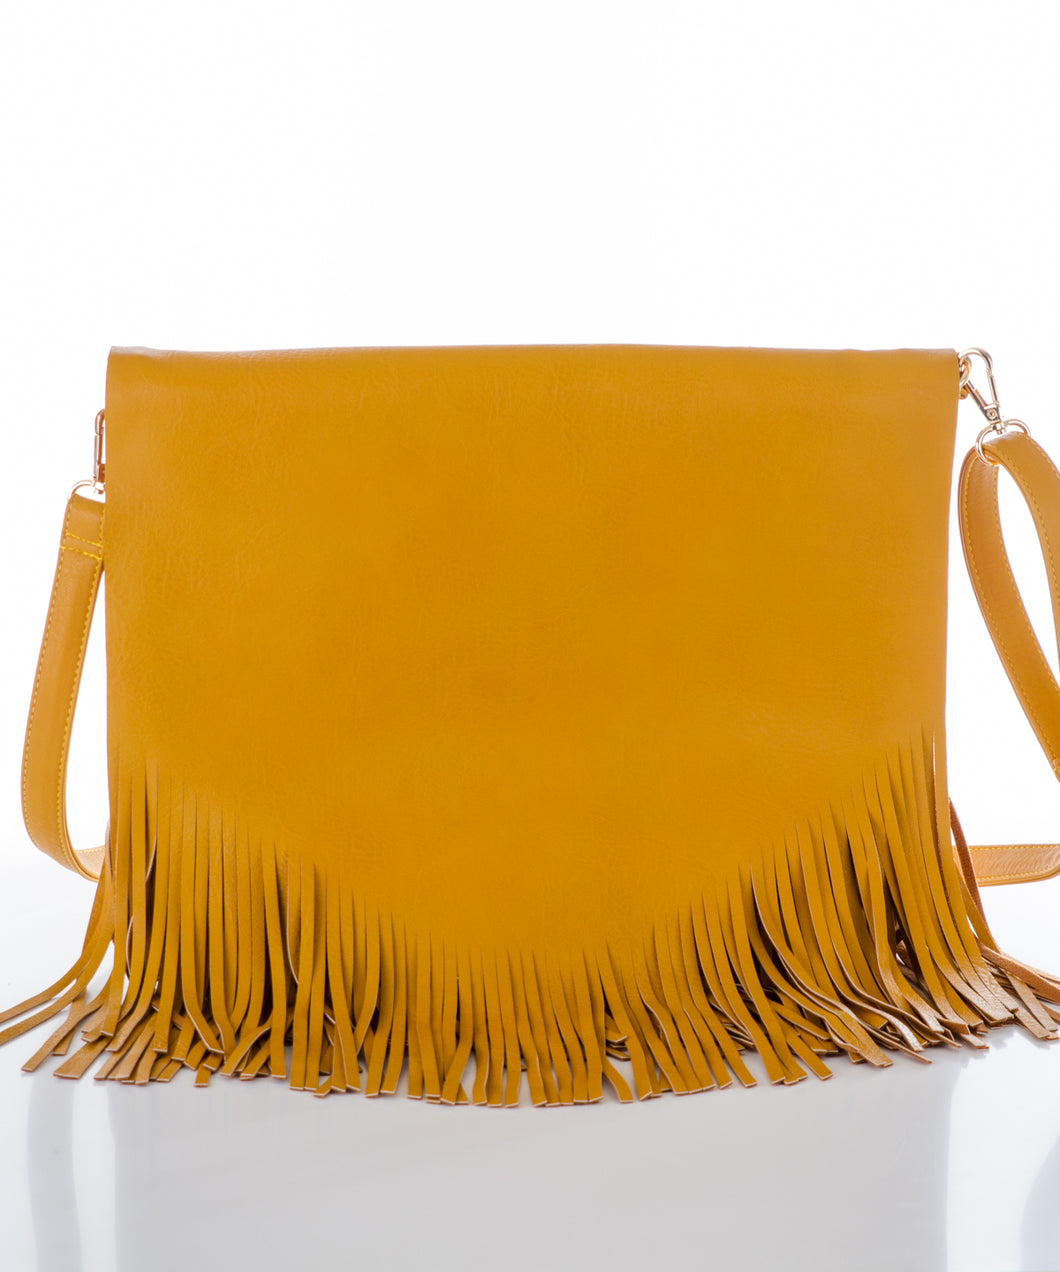 Sweetgum Heidi Crossbody in Mustard